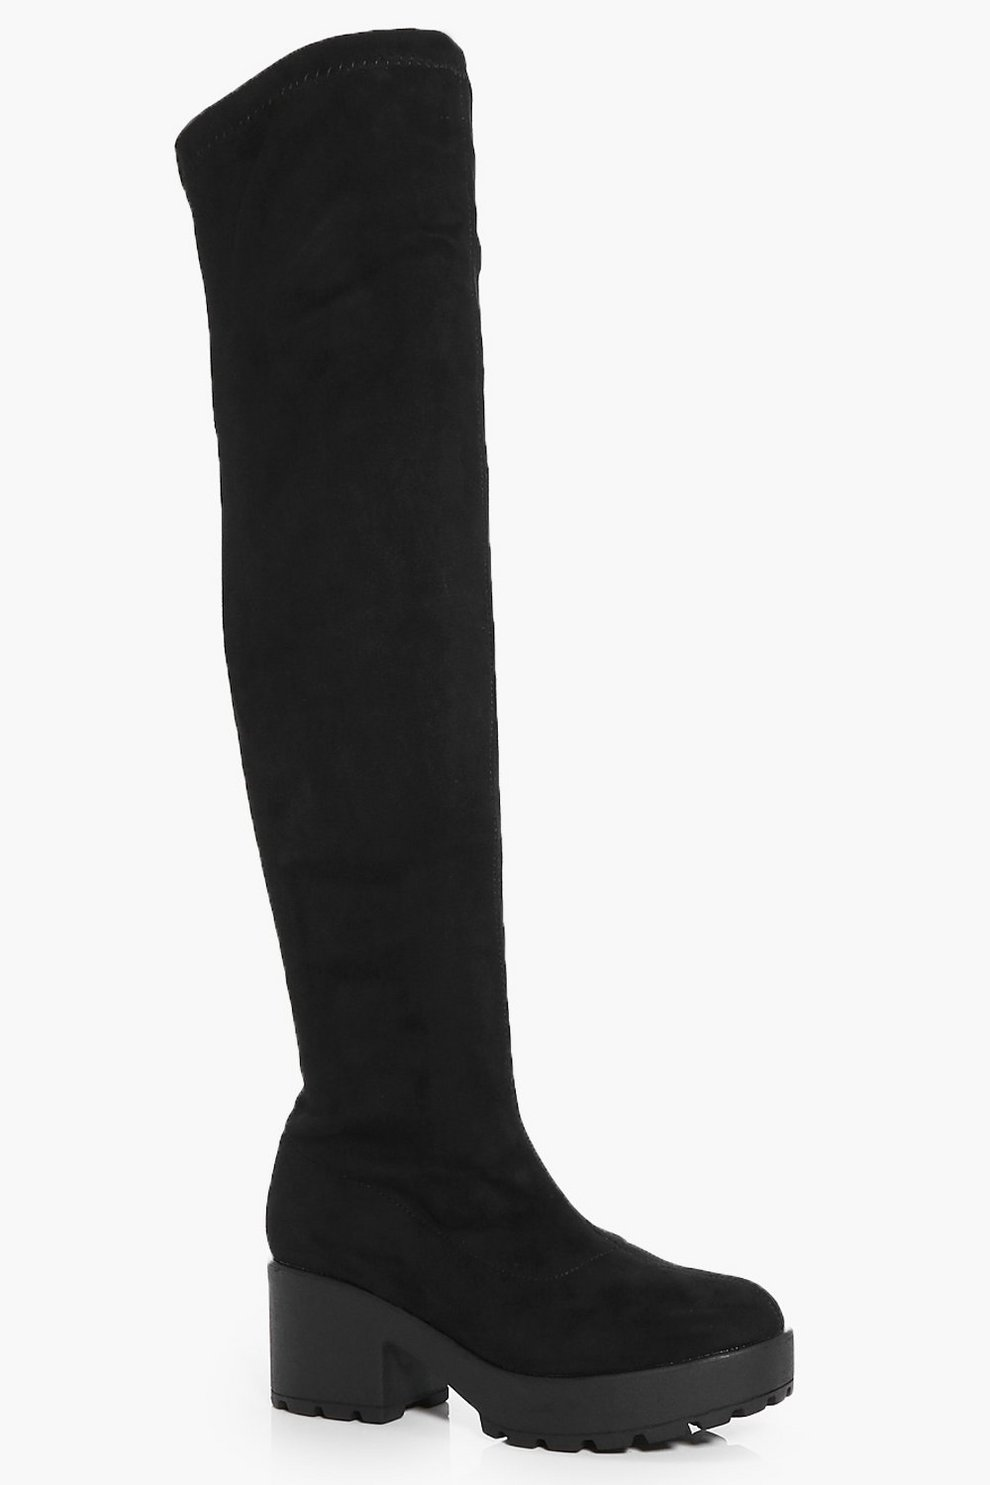 800e745dcd1 Tia Cleated Chunky Sole Over The Knee Boot